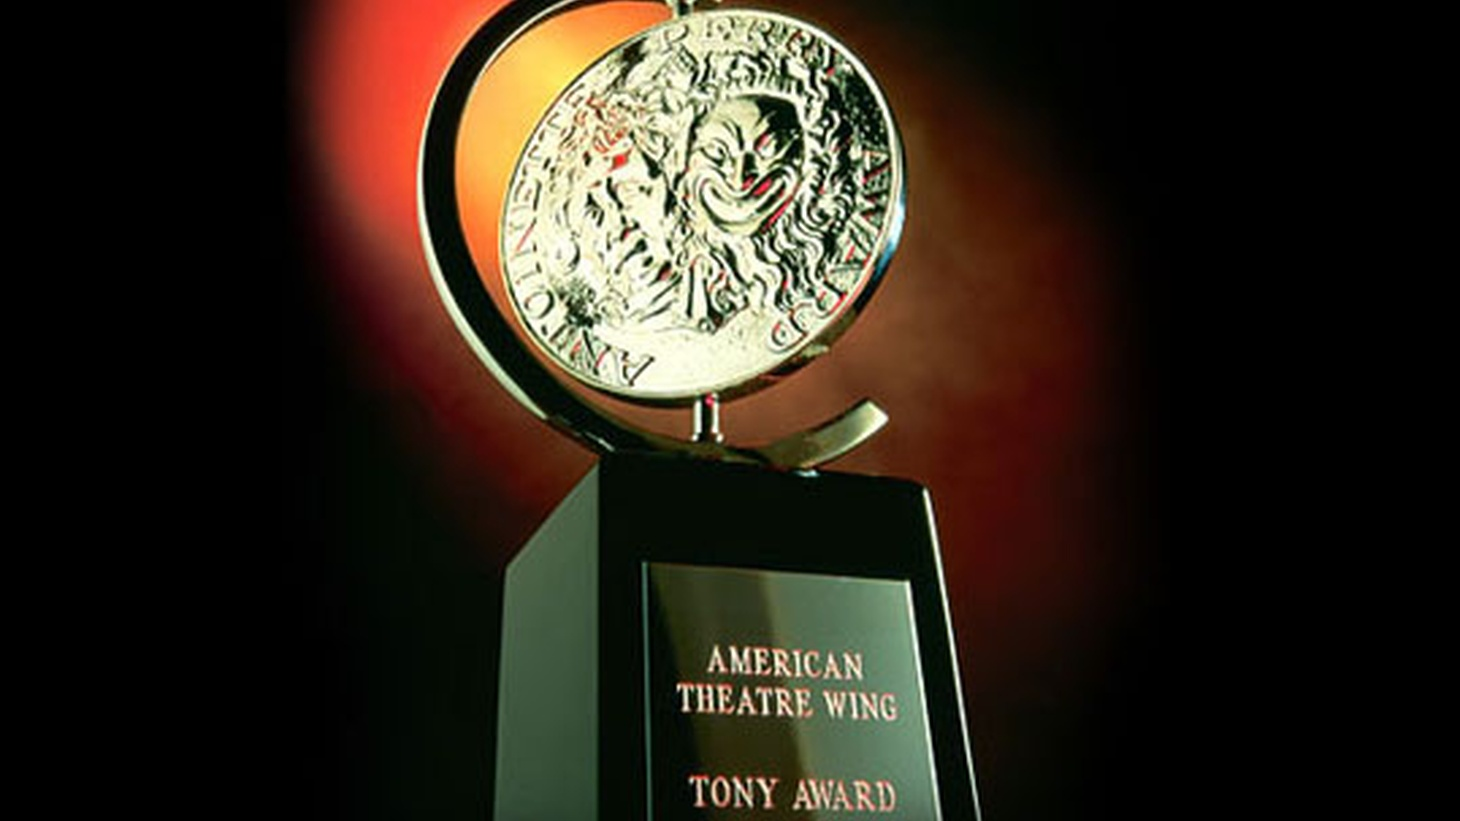 This week Anthony wants to talk about the Tony Awards.